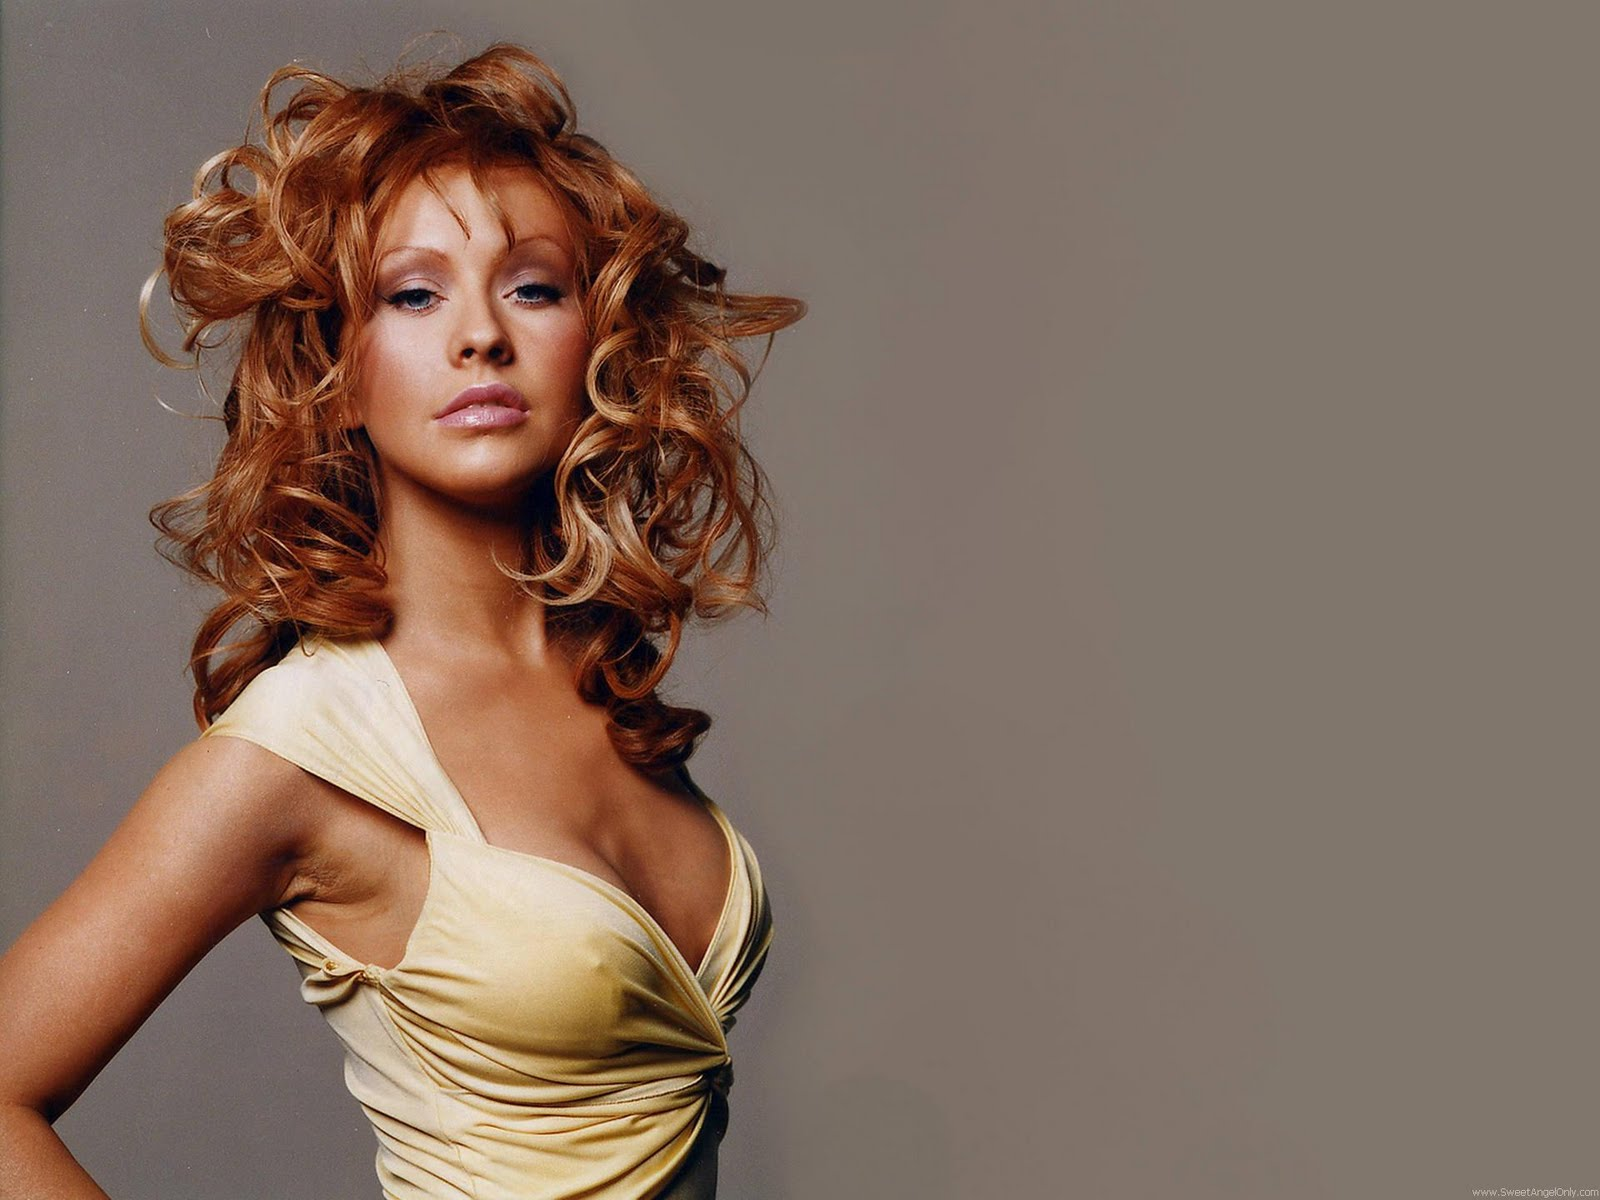 Christina Aguilera Click on the Image for Larger View 1600x1200